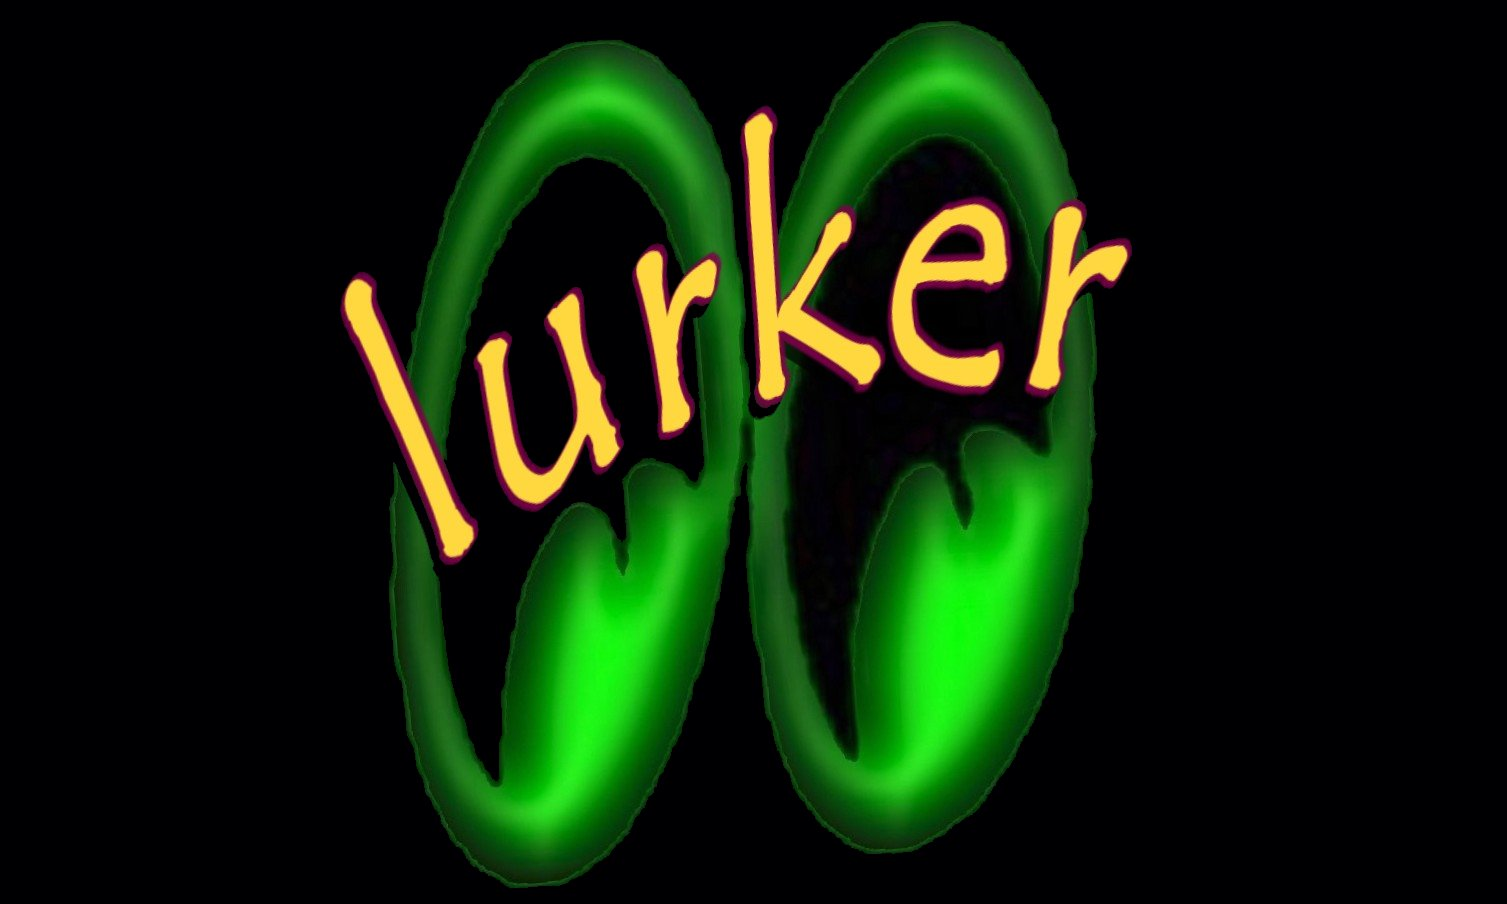 Welcome to lurker00.com